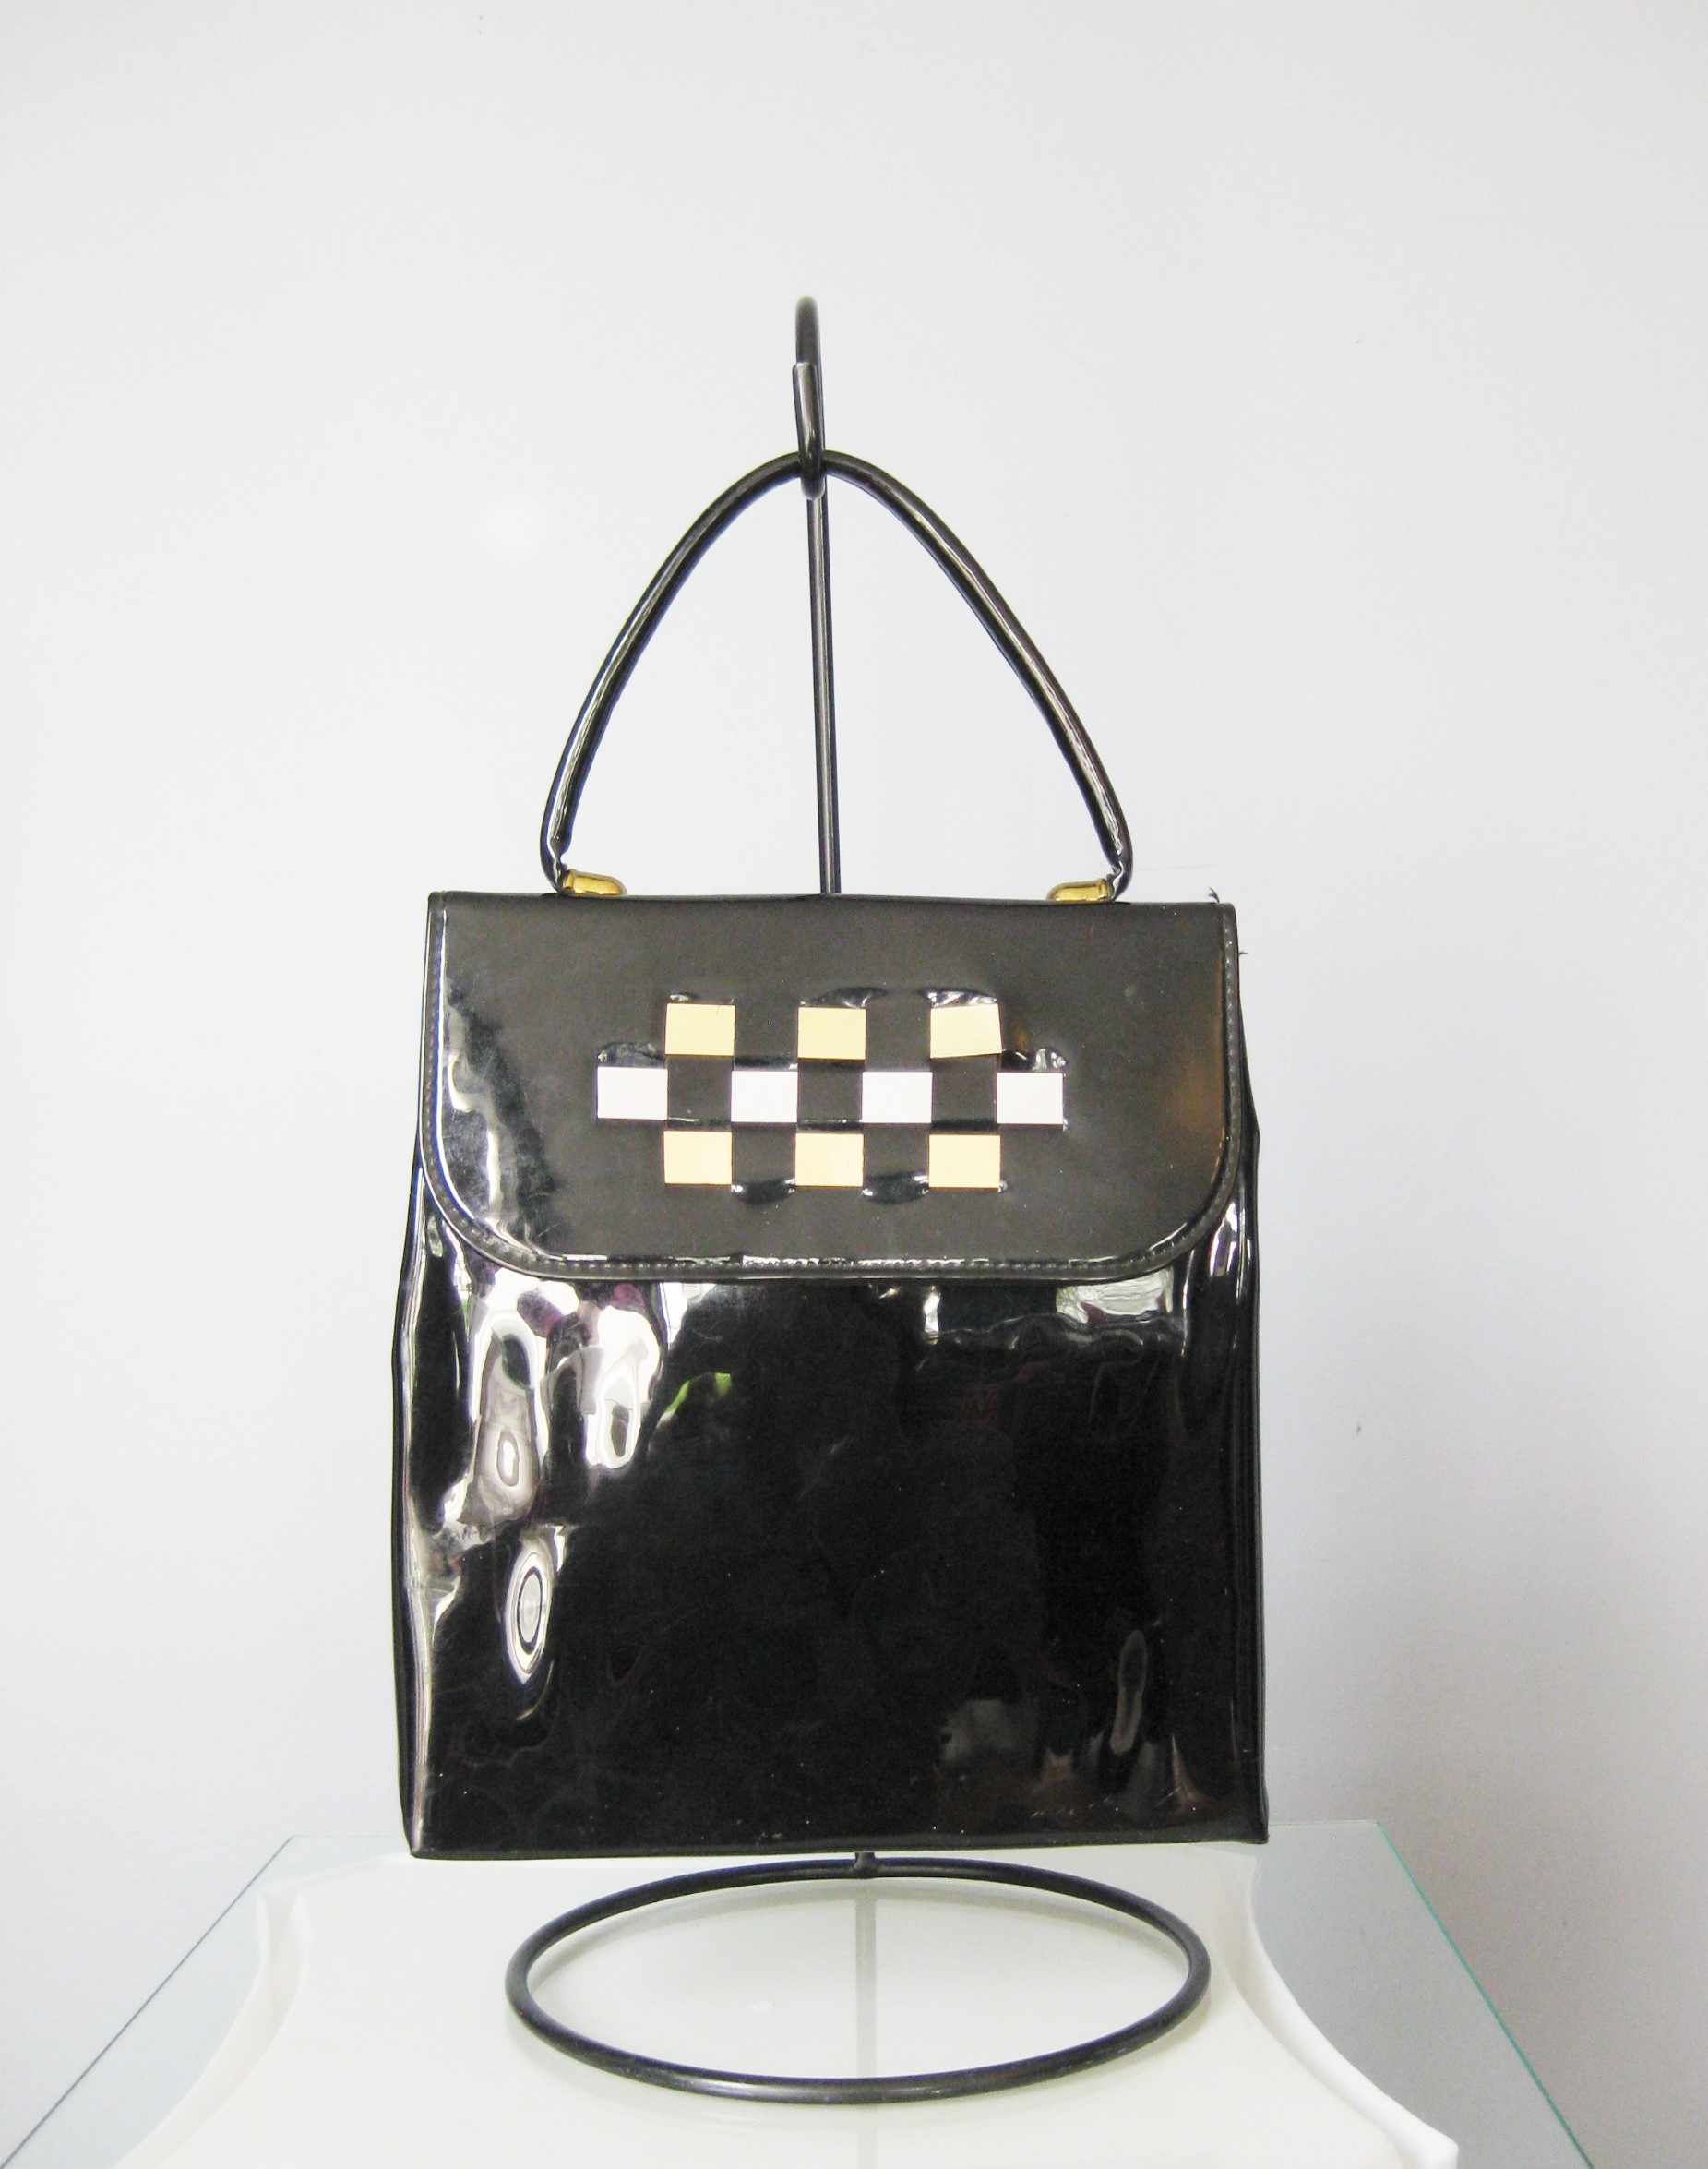 super cute vintage bag in black patent leather<br /> Top Handle, slim style<br /> Three metal foil strips are woven into the flap for decoration.  Two 'gold' ones and a 'silver' one in the middle<br /> No tags<br /> Faille Lining<br /> Snap closure<br /> <br /> The bag is in great shape with some imperfections on the patent leather. No gashes but some dull areas<br /> <br /> Width: 8.5in<br /> Height: 9 1/2in<br /> Depth: 2;5in<br /> Handle drop: 4in<br /> <br /> Thanks for looking!<br /> #13999